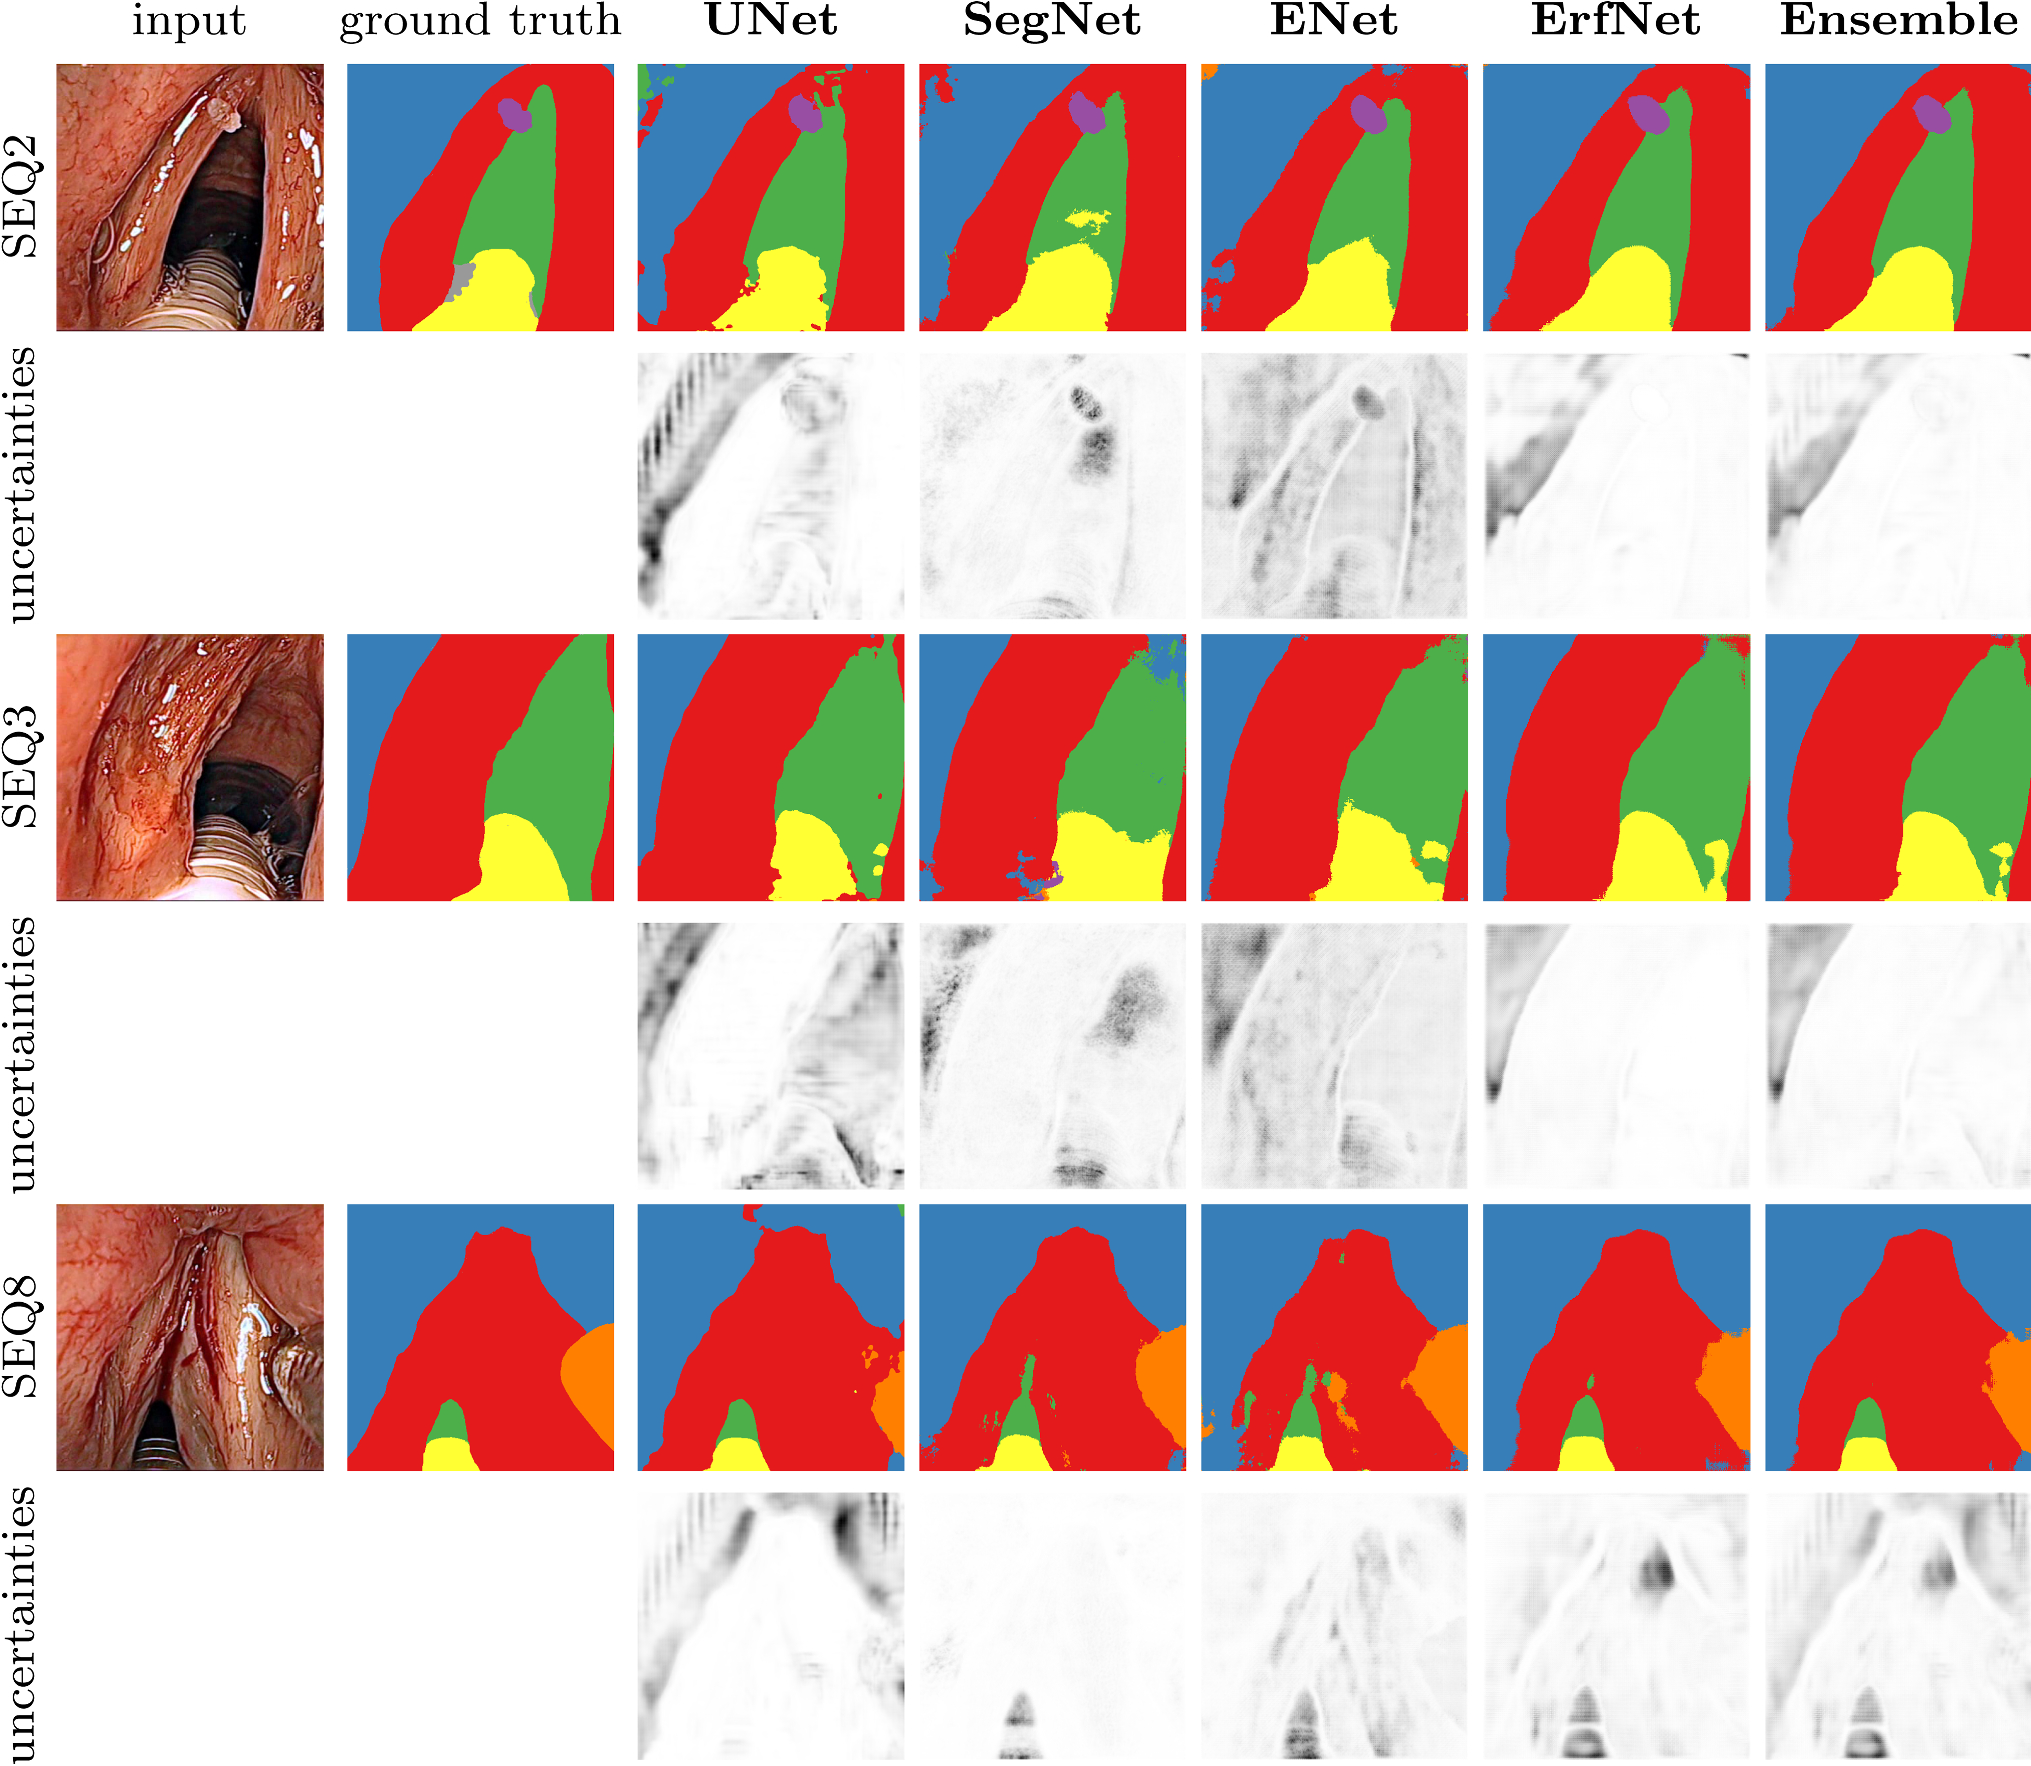 A dataset of laryngeal endoscopic images with comparative